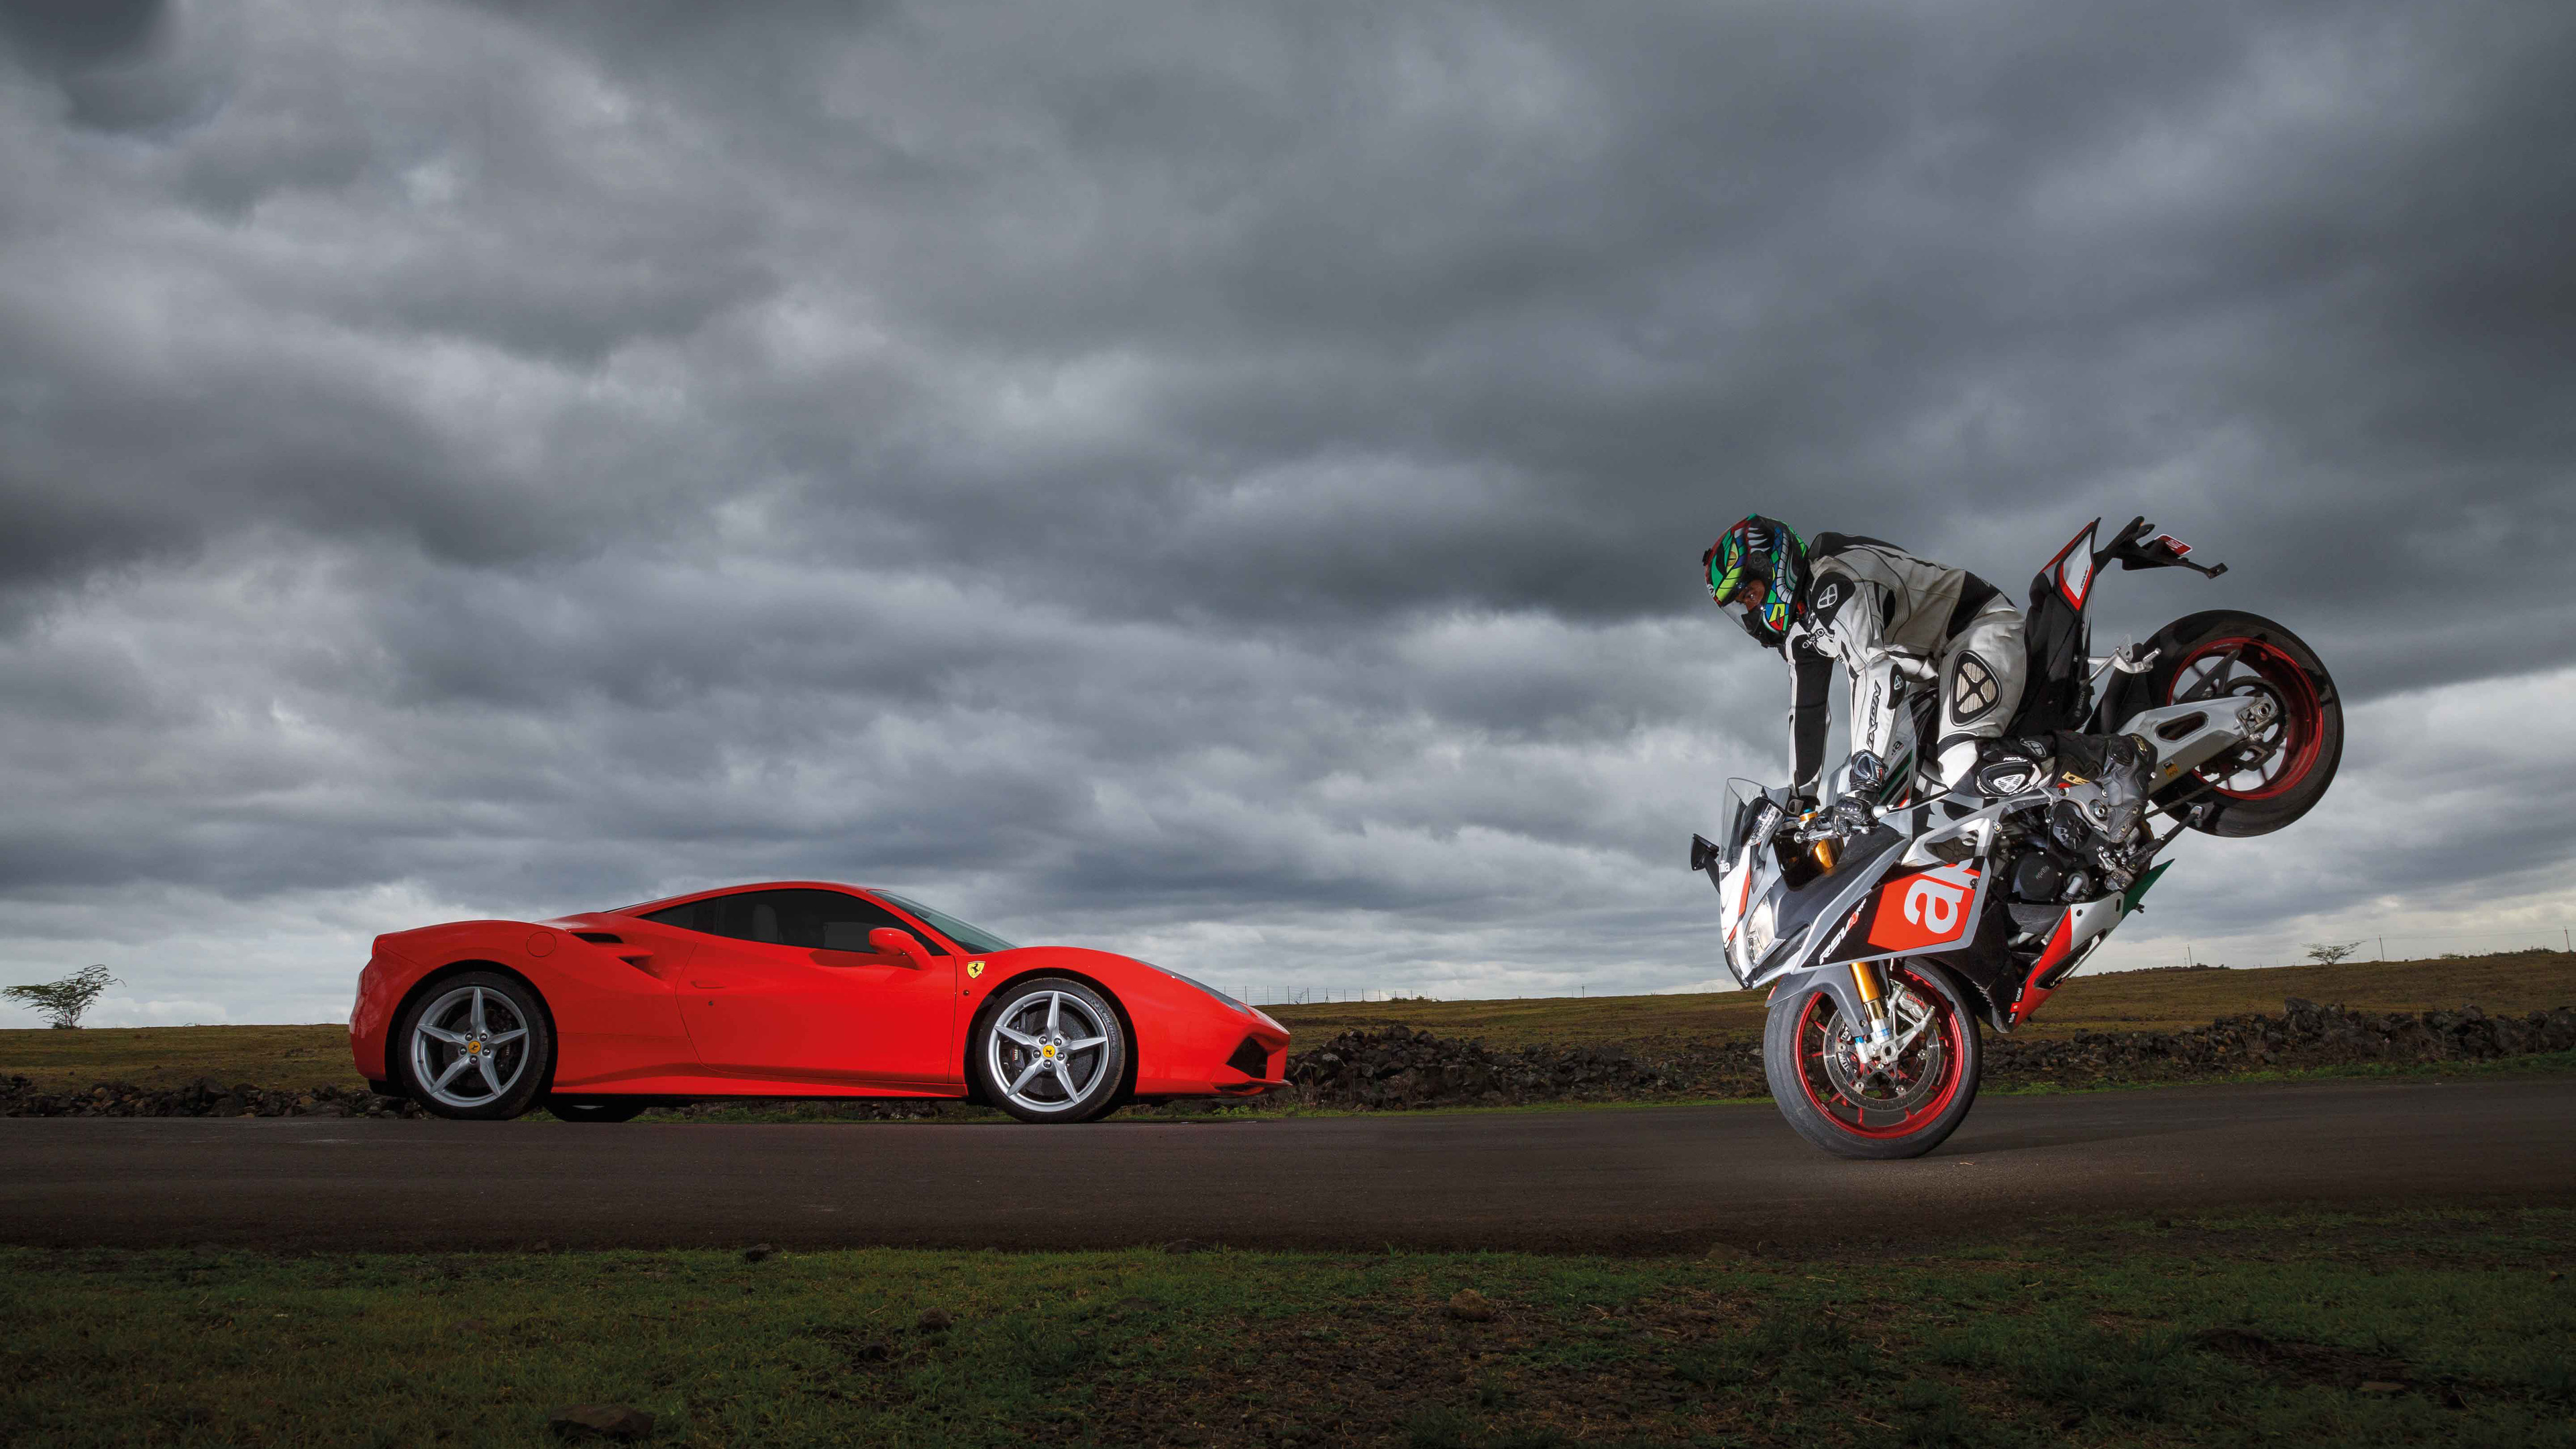 ferrari 488 gtb vs aprilia rsv4 1539792944 - Ferrari 488 GTB Vs Aprilia RSV4 - hd-wallpapers, ferrari wallpapers, ferrari 488 wallpapers, cars wallpapers, aprilia wallpapers, 5k wallpapers, 4k-wallpapers